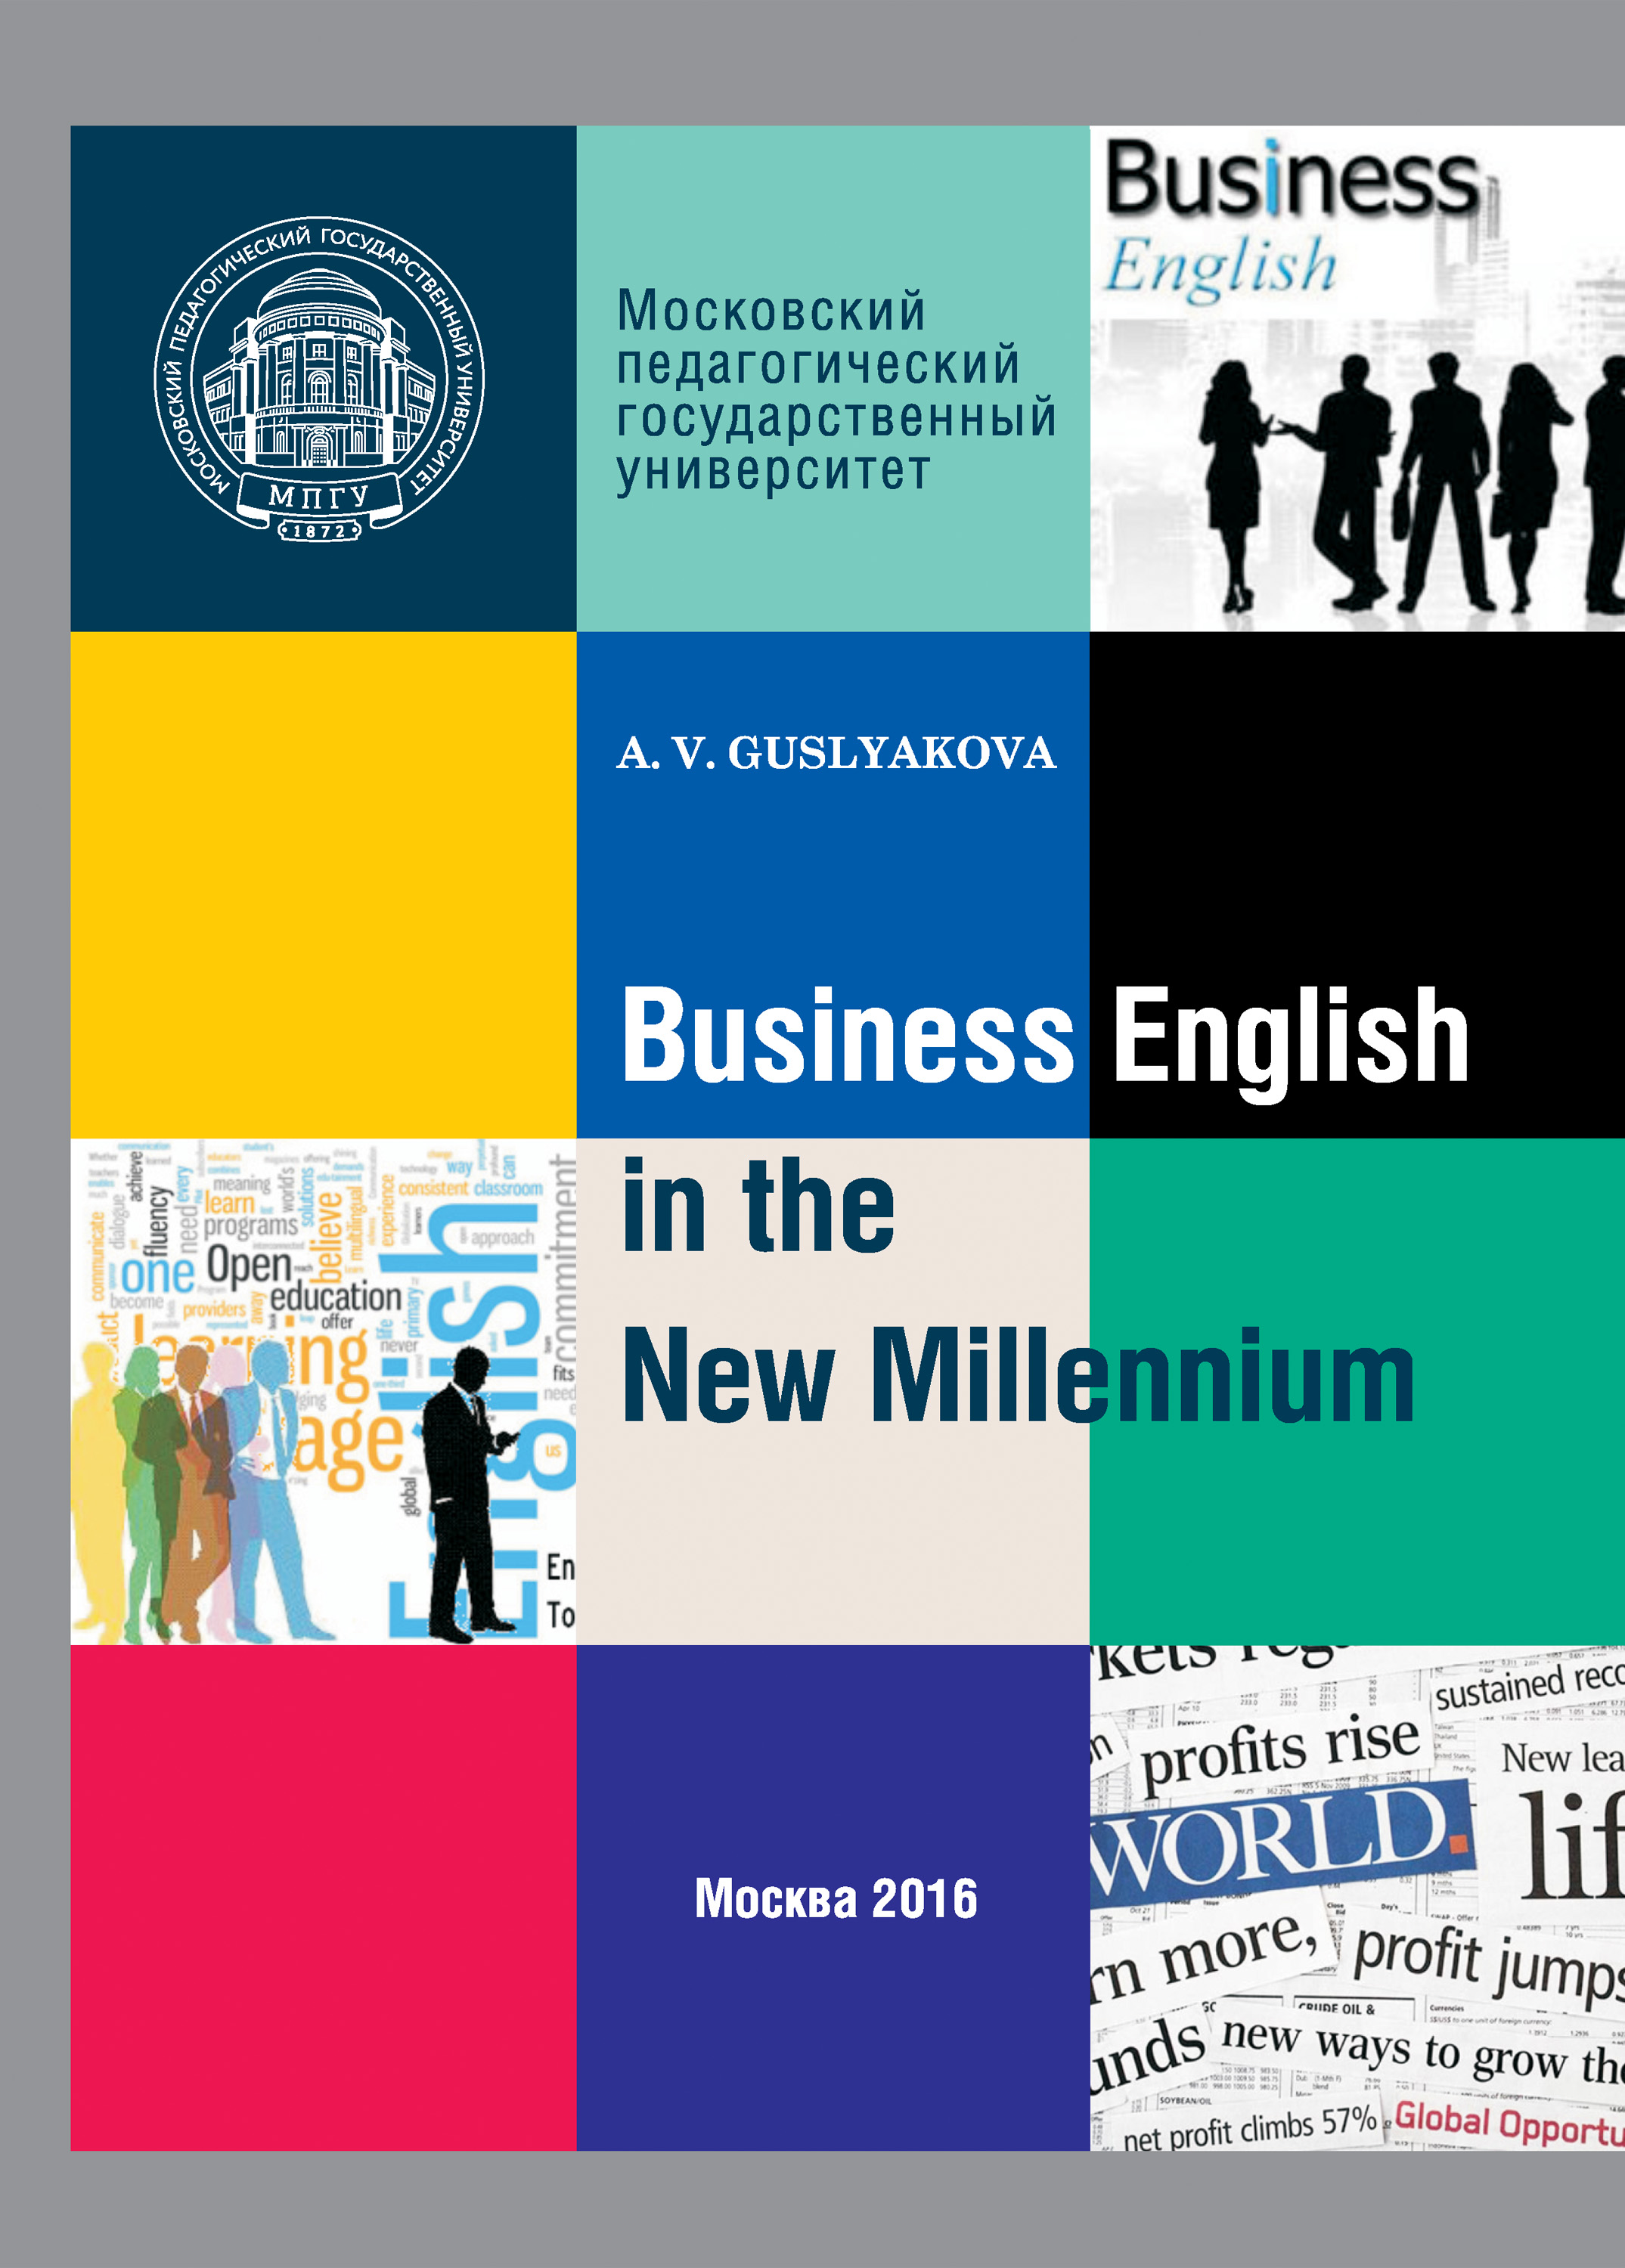 Алла Гуслякова Business English in the New Millennium резникова н о прошлом по английски учебник английского языка для исторических факультетов in english on the past учебное пособие